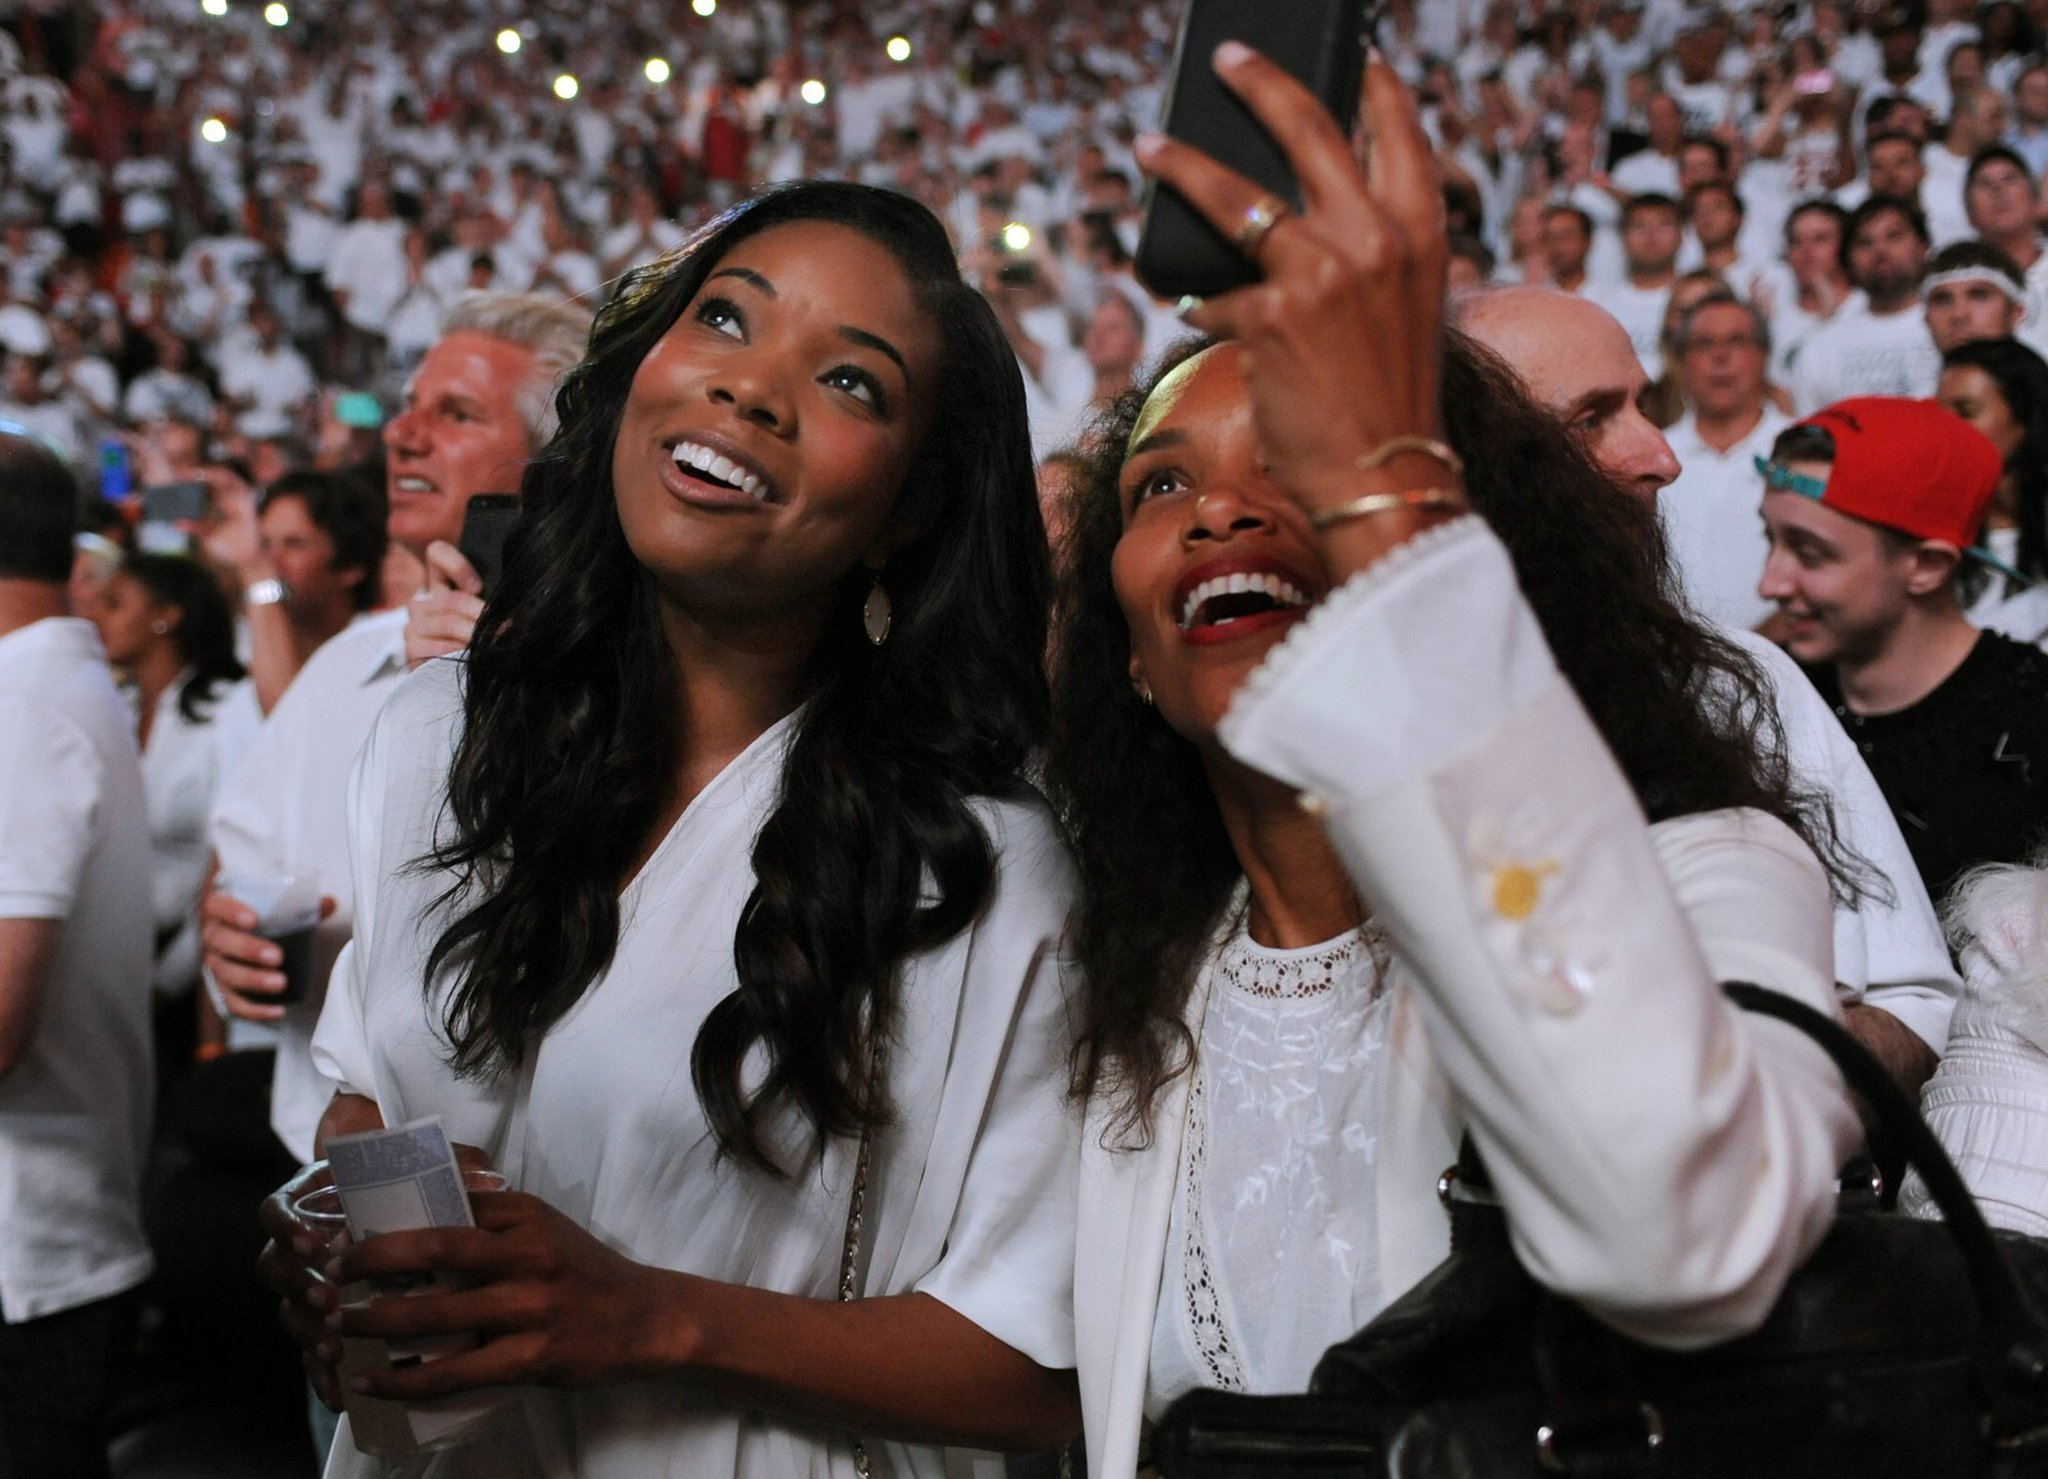 Celebs spotted at Miami Heat games - Gabrielle Union